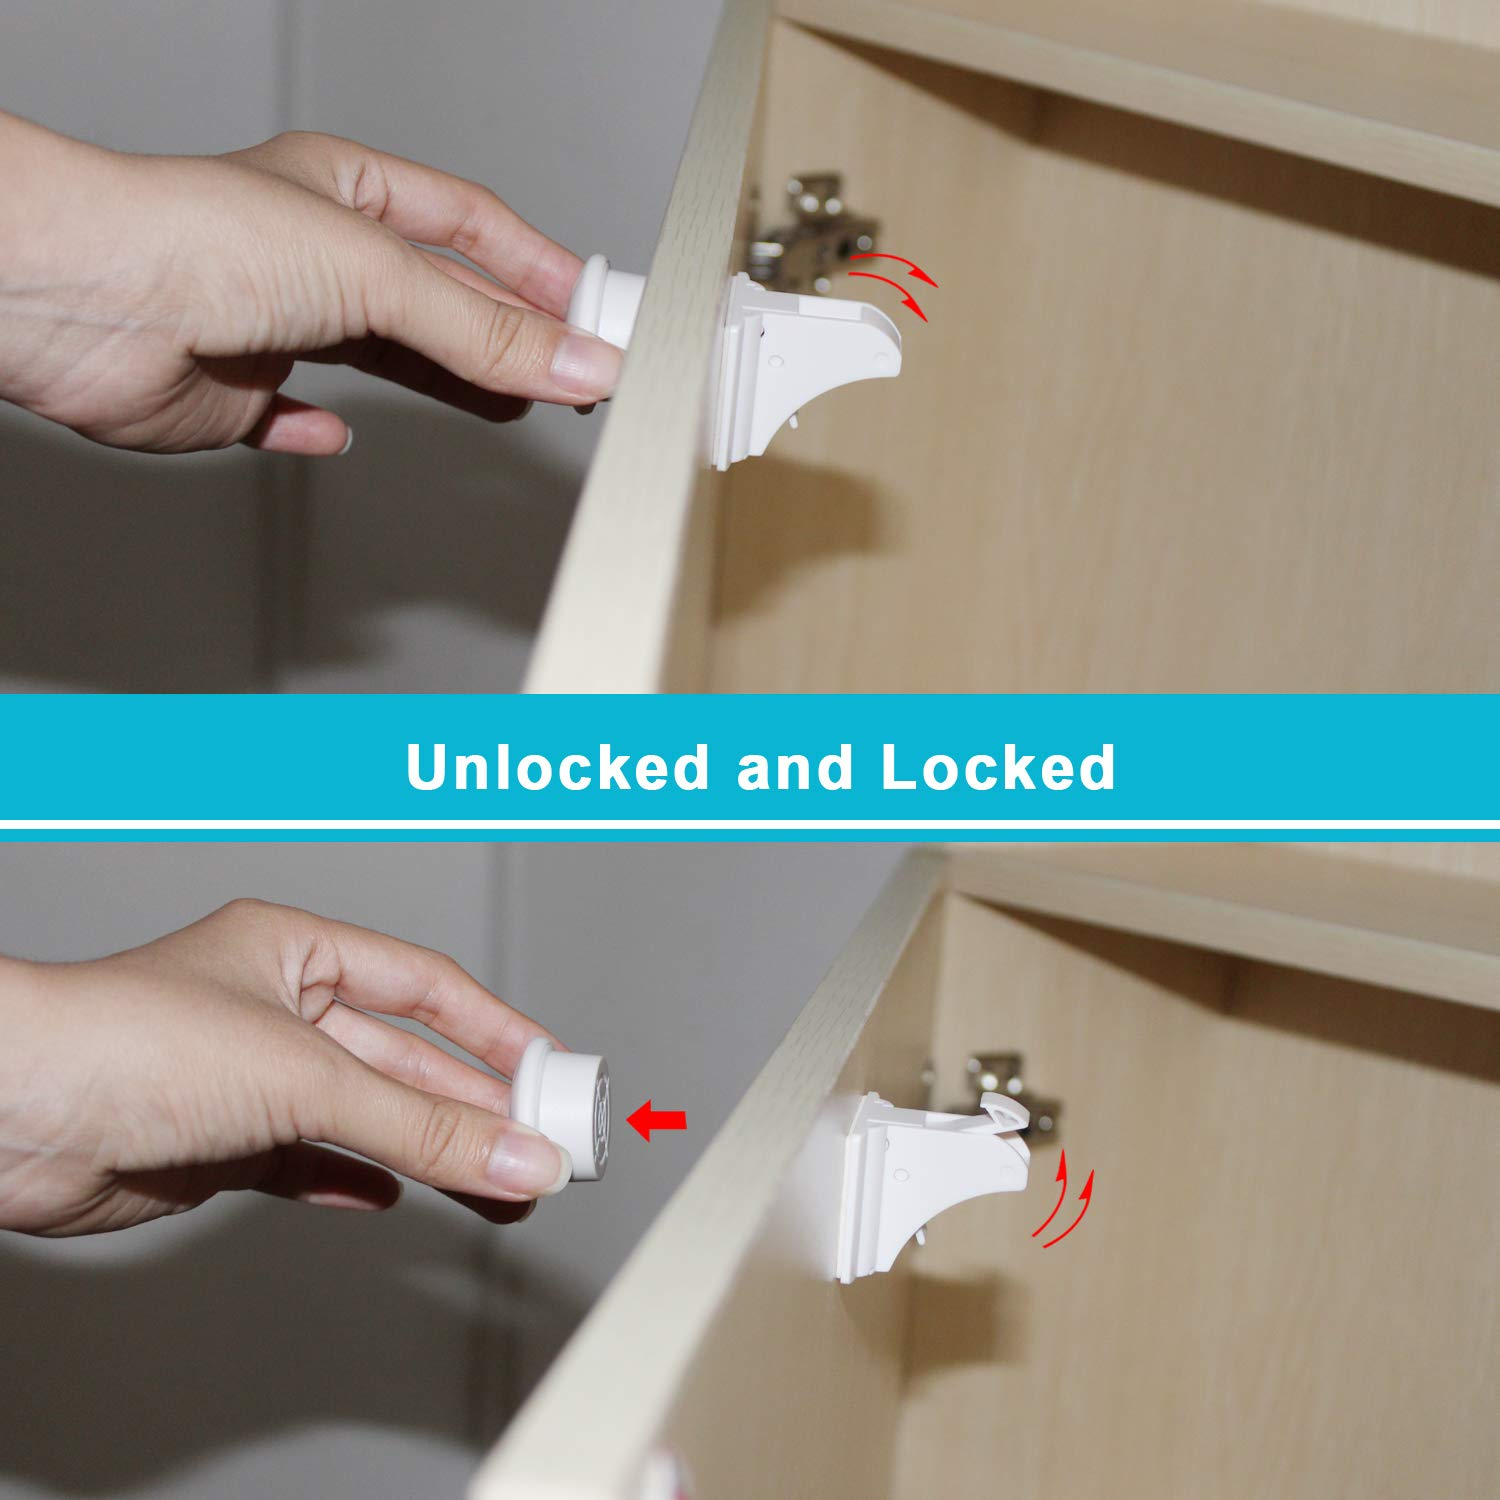 Magnetic Cabinet Locks - Baby Safety Locks, Childproof Cabinet Latch for Baby Proofing Cabinets, Drawers and Locking Cupboard - No Tools Needed (10 Locks with 1 Keys)